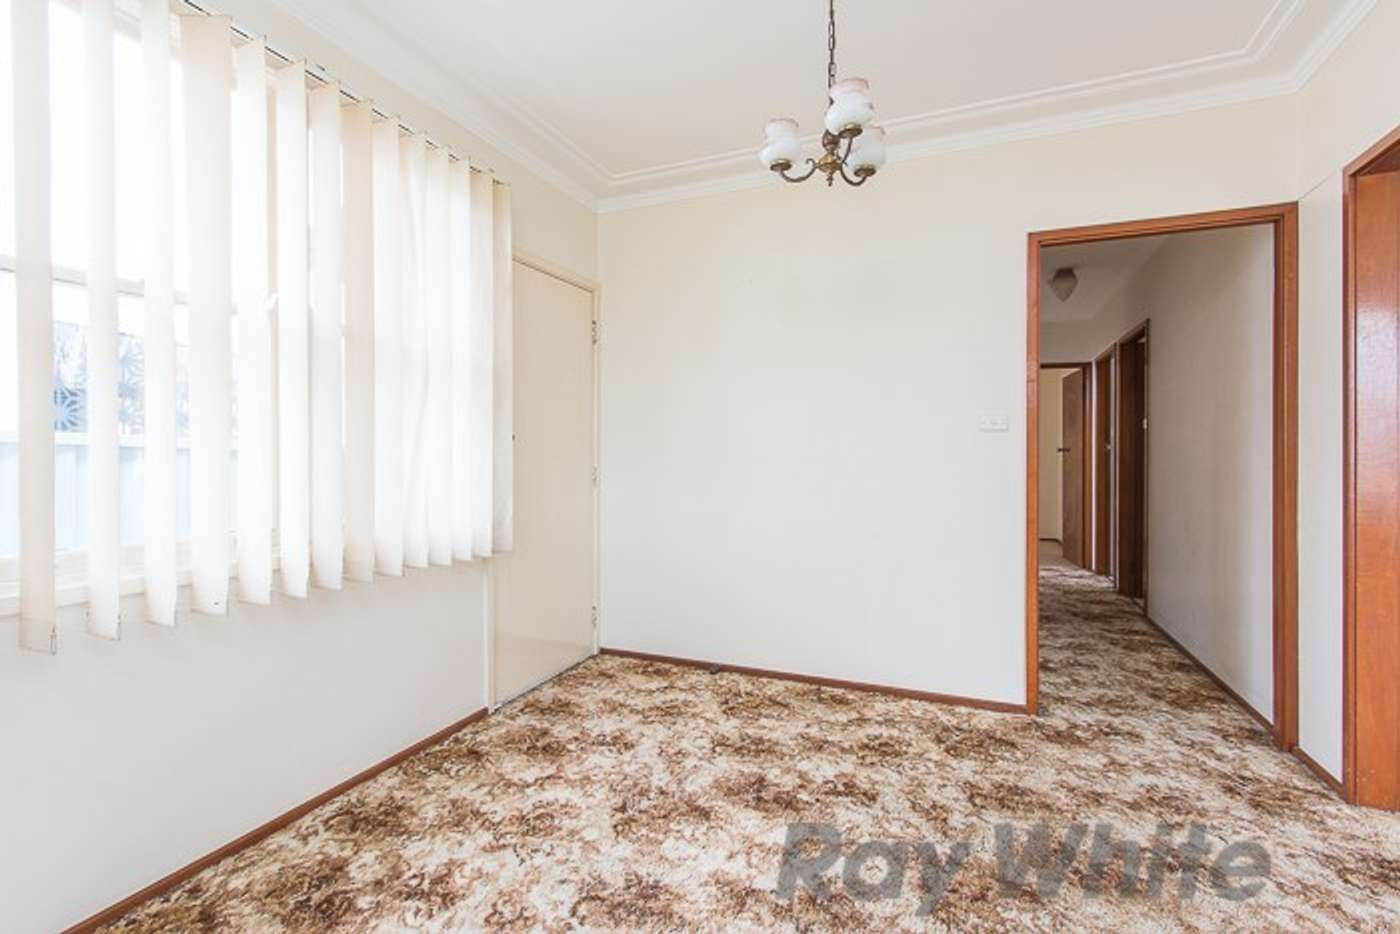 Sixth view of Homely house listing, 40 Narara Road, Adamstown NSW 2289